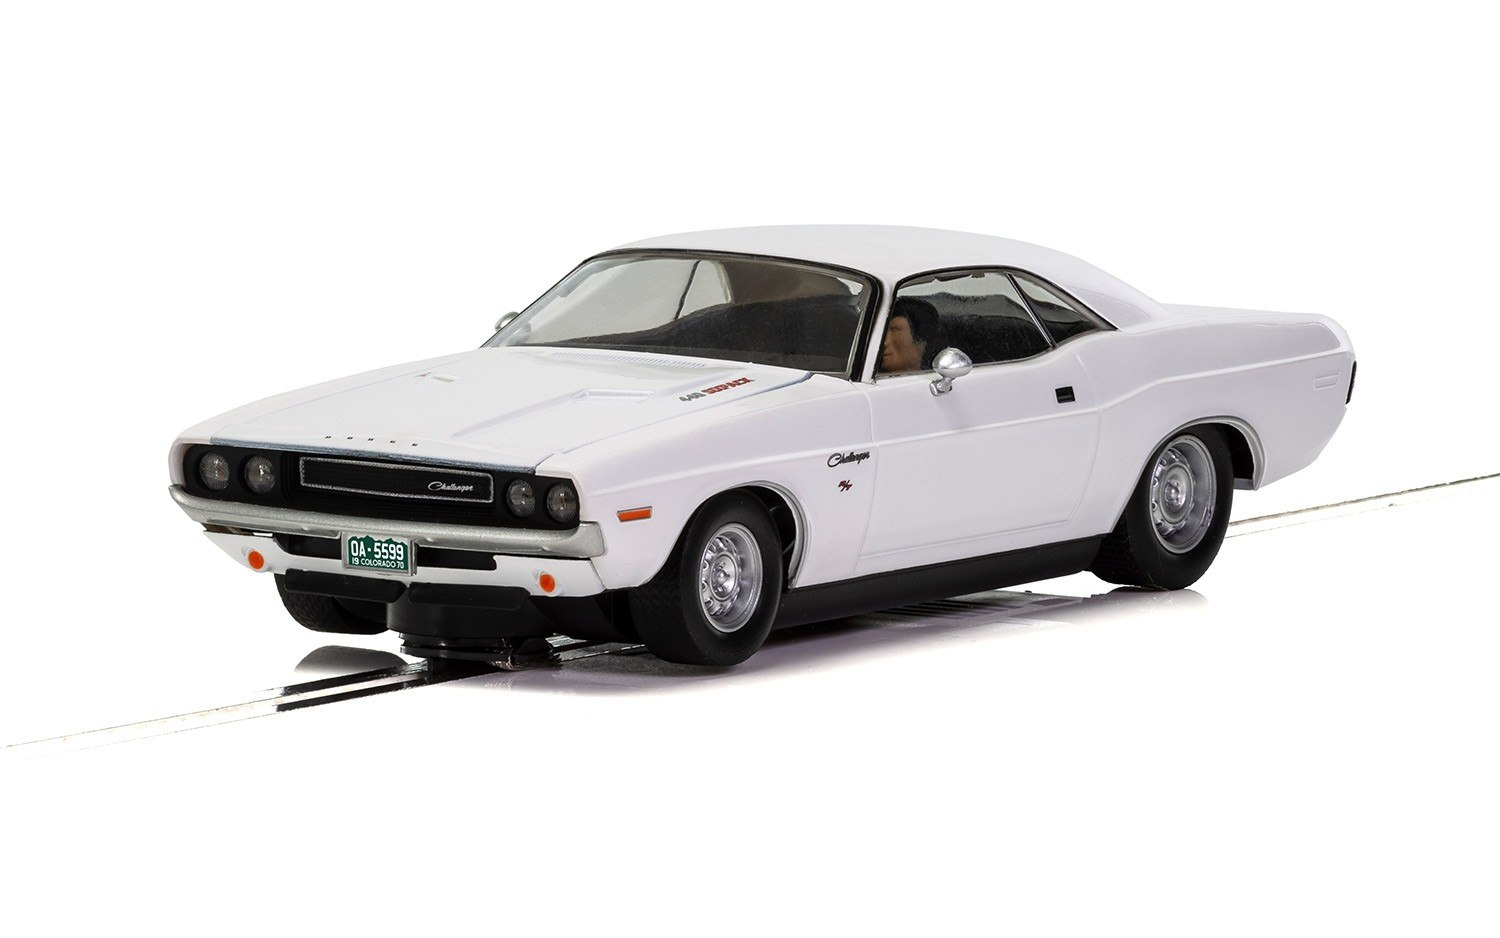 1970 Dodge Challenger White 1/32 Slot Car